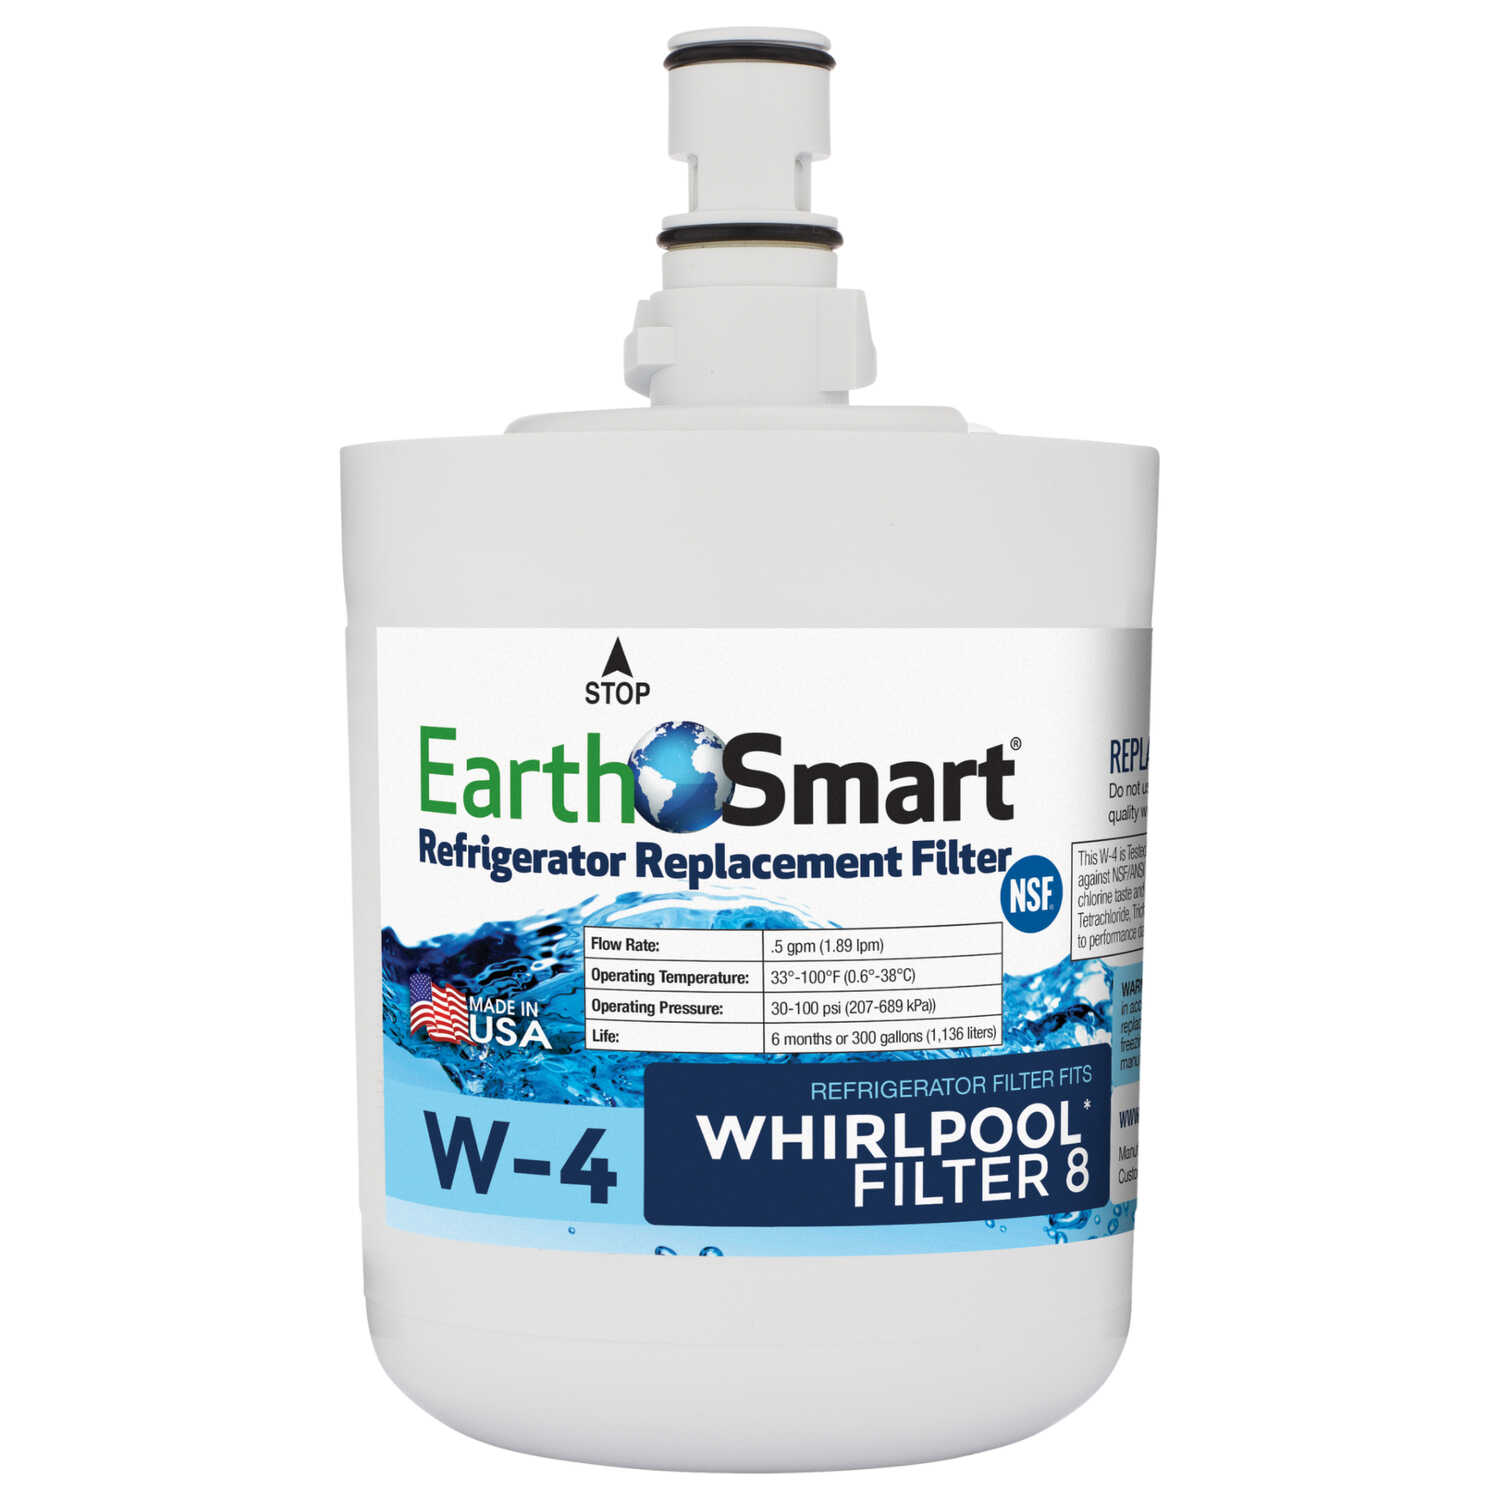 EarthSmart  W-4  Replacement Filter  For Refrigerators 300 gal.